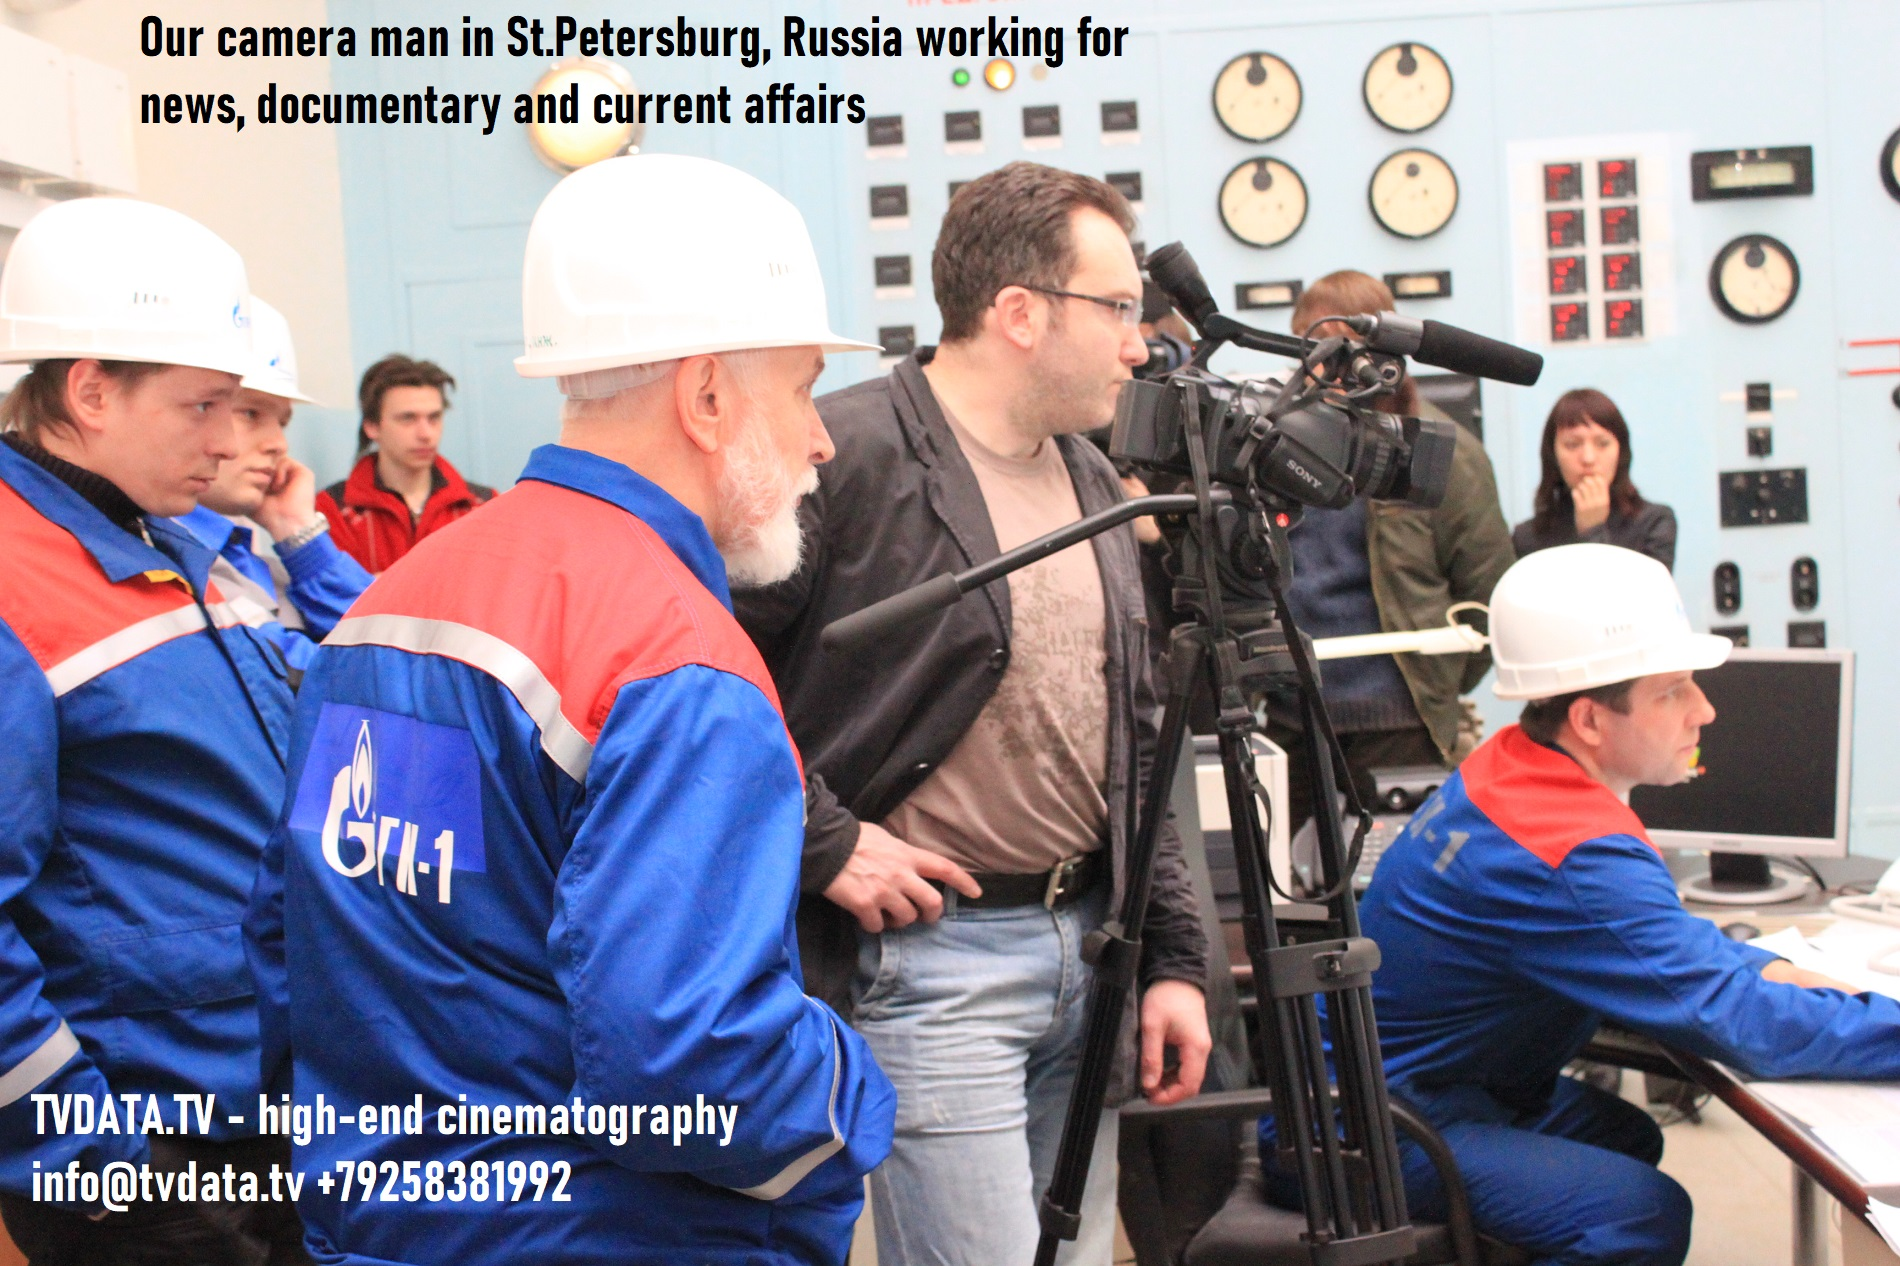 high-end cinematography in various cities across Russia